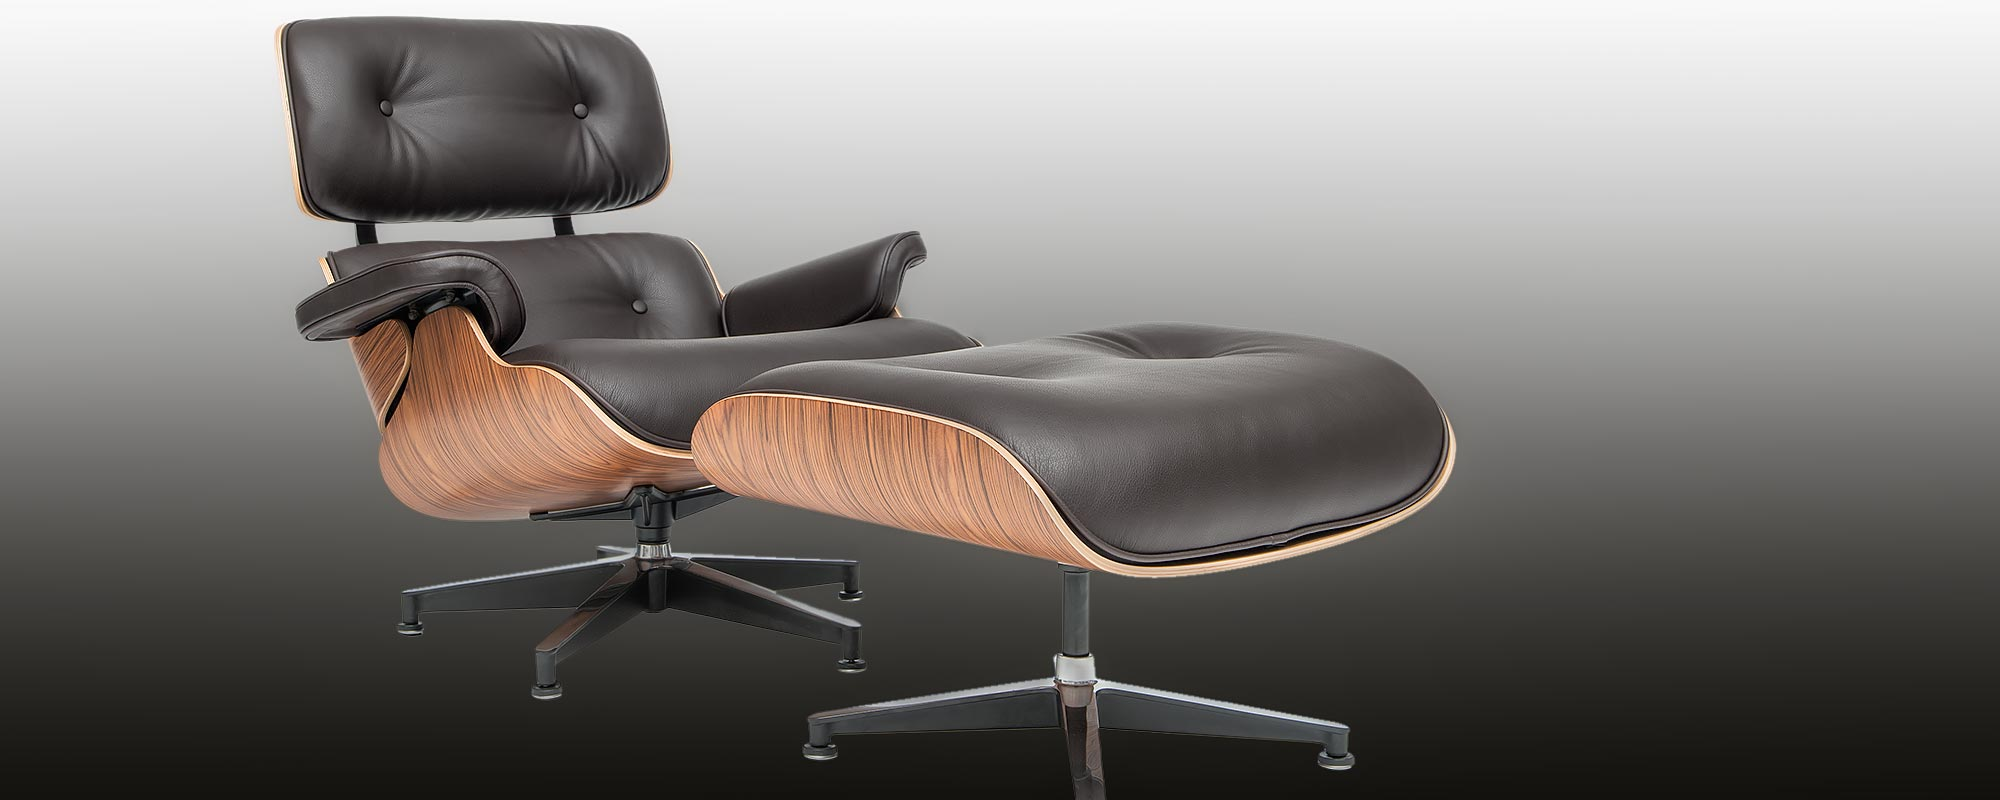 Eames inspired lounge chair a steelform design classic - Lounge chair eames prix ...